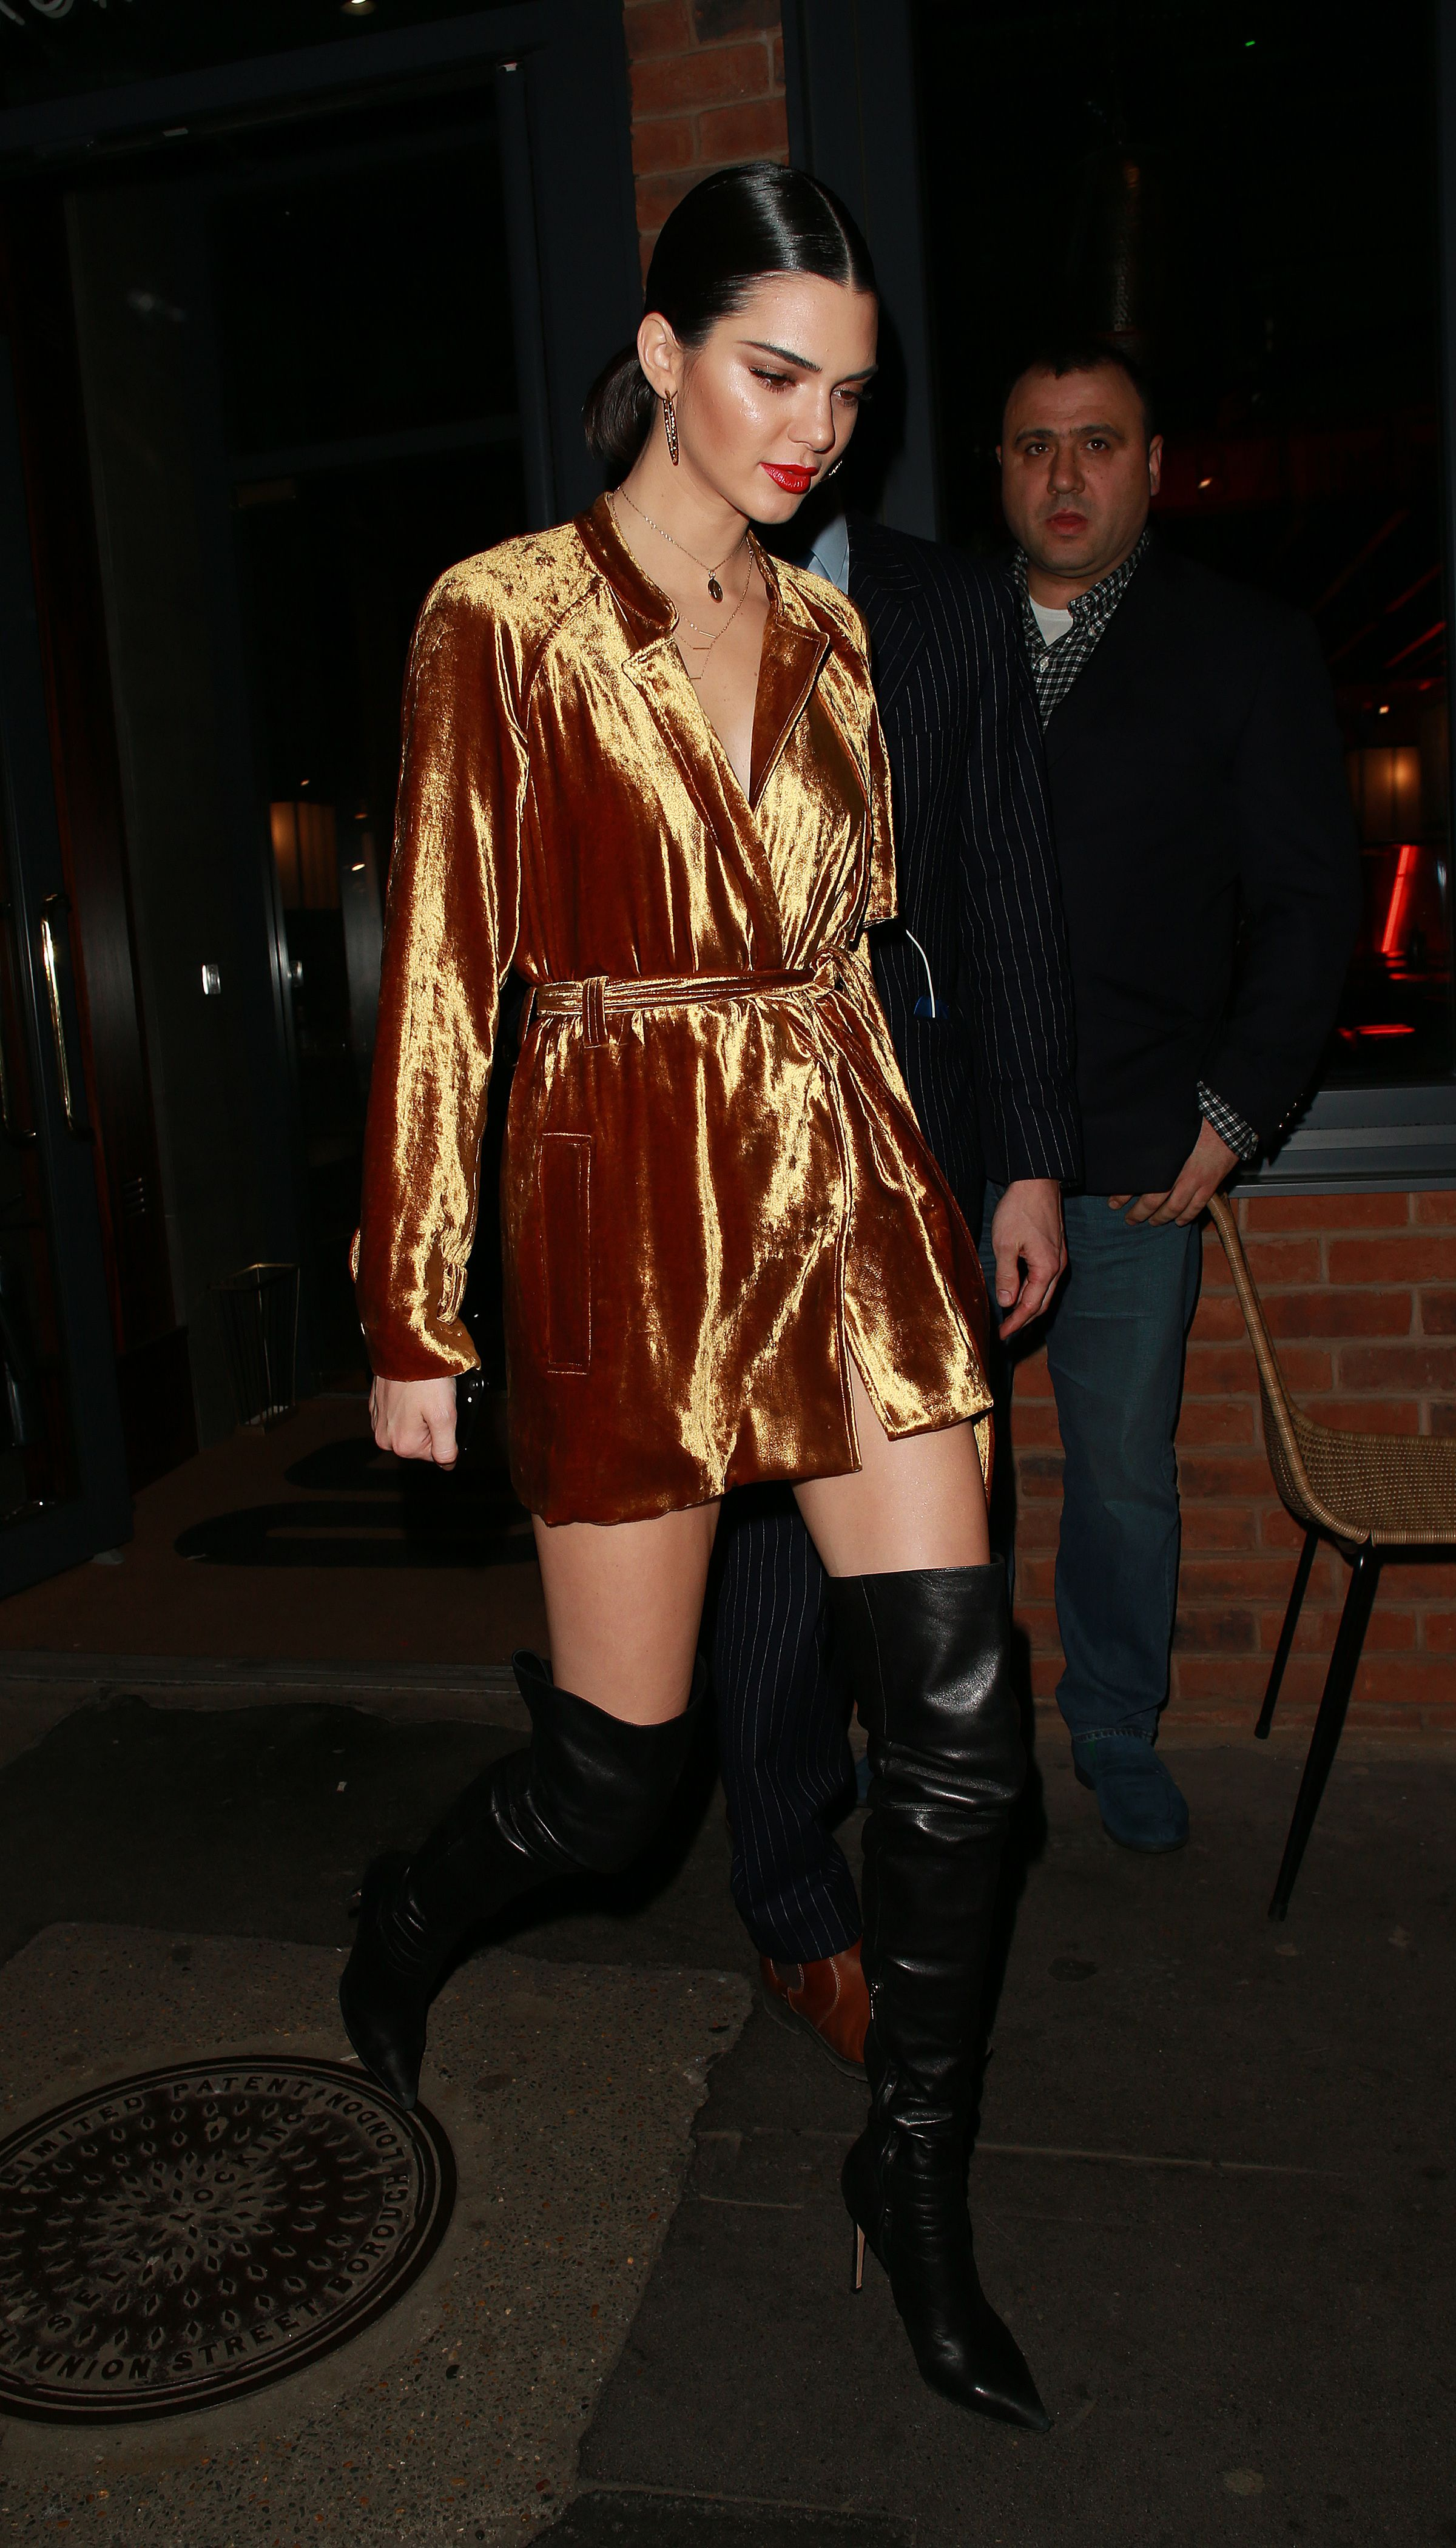 48cbc3056a0 Kendall Jenner Street Style - Kendall Jenner s Best Fashion Looks